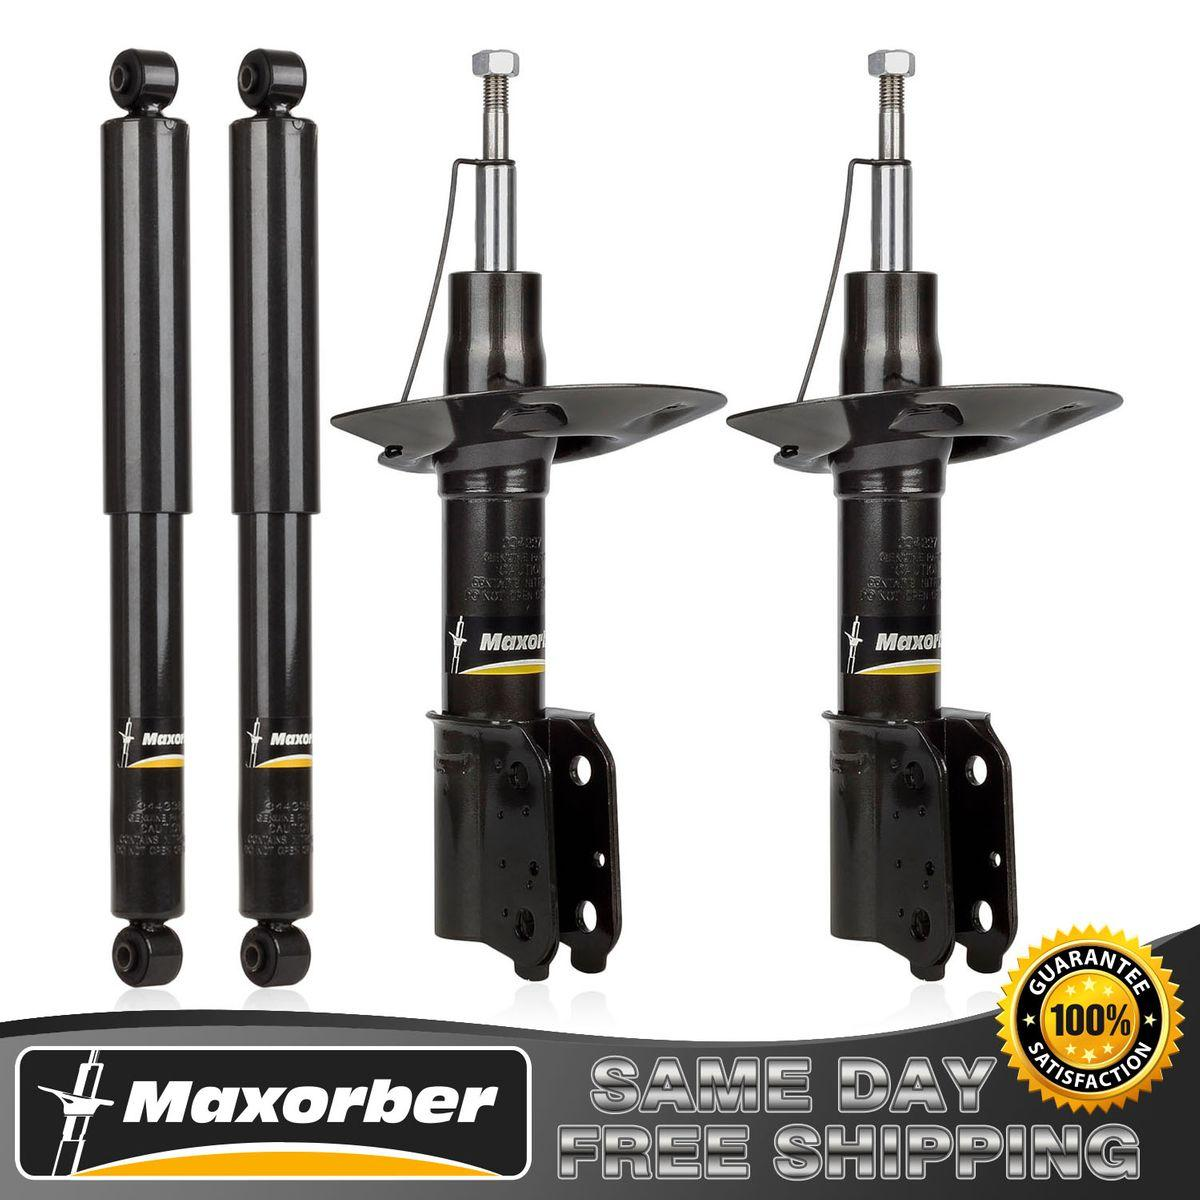 2004 Pontiac Montana Camshaft: Maxorber NEW Full Set Shocks Struts For 1999-2005 Pontiac